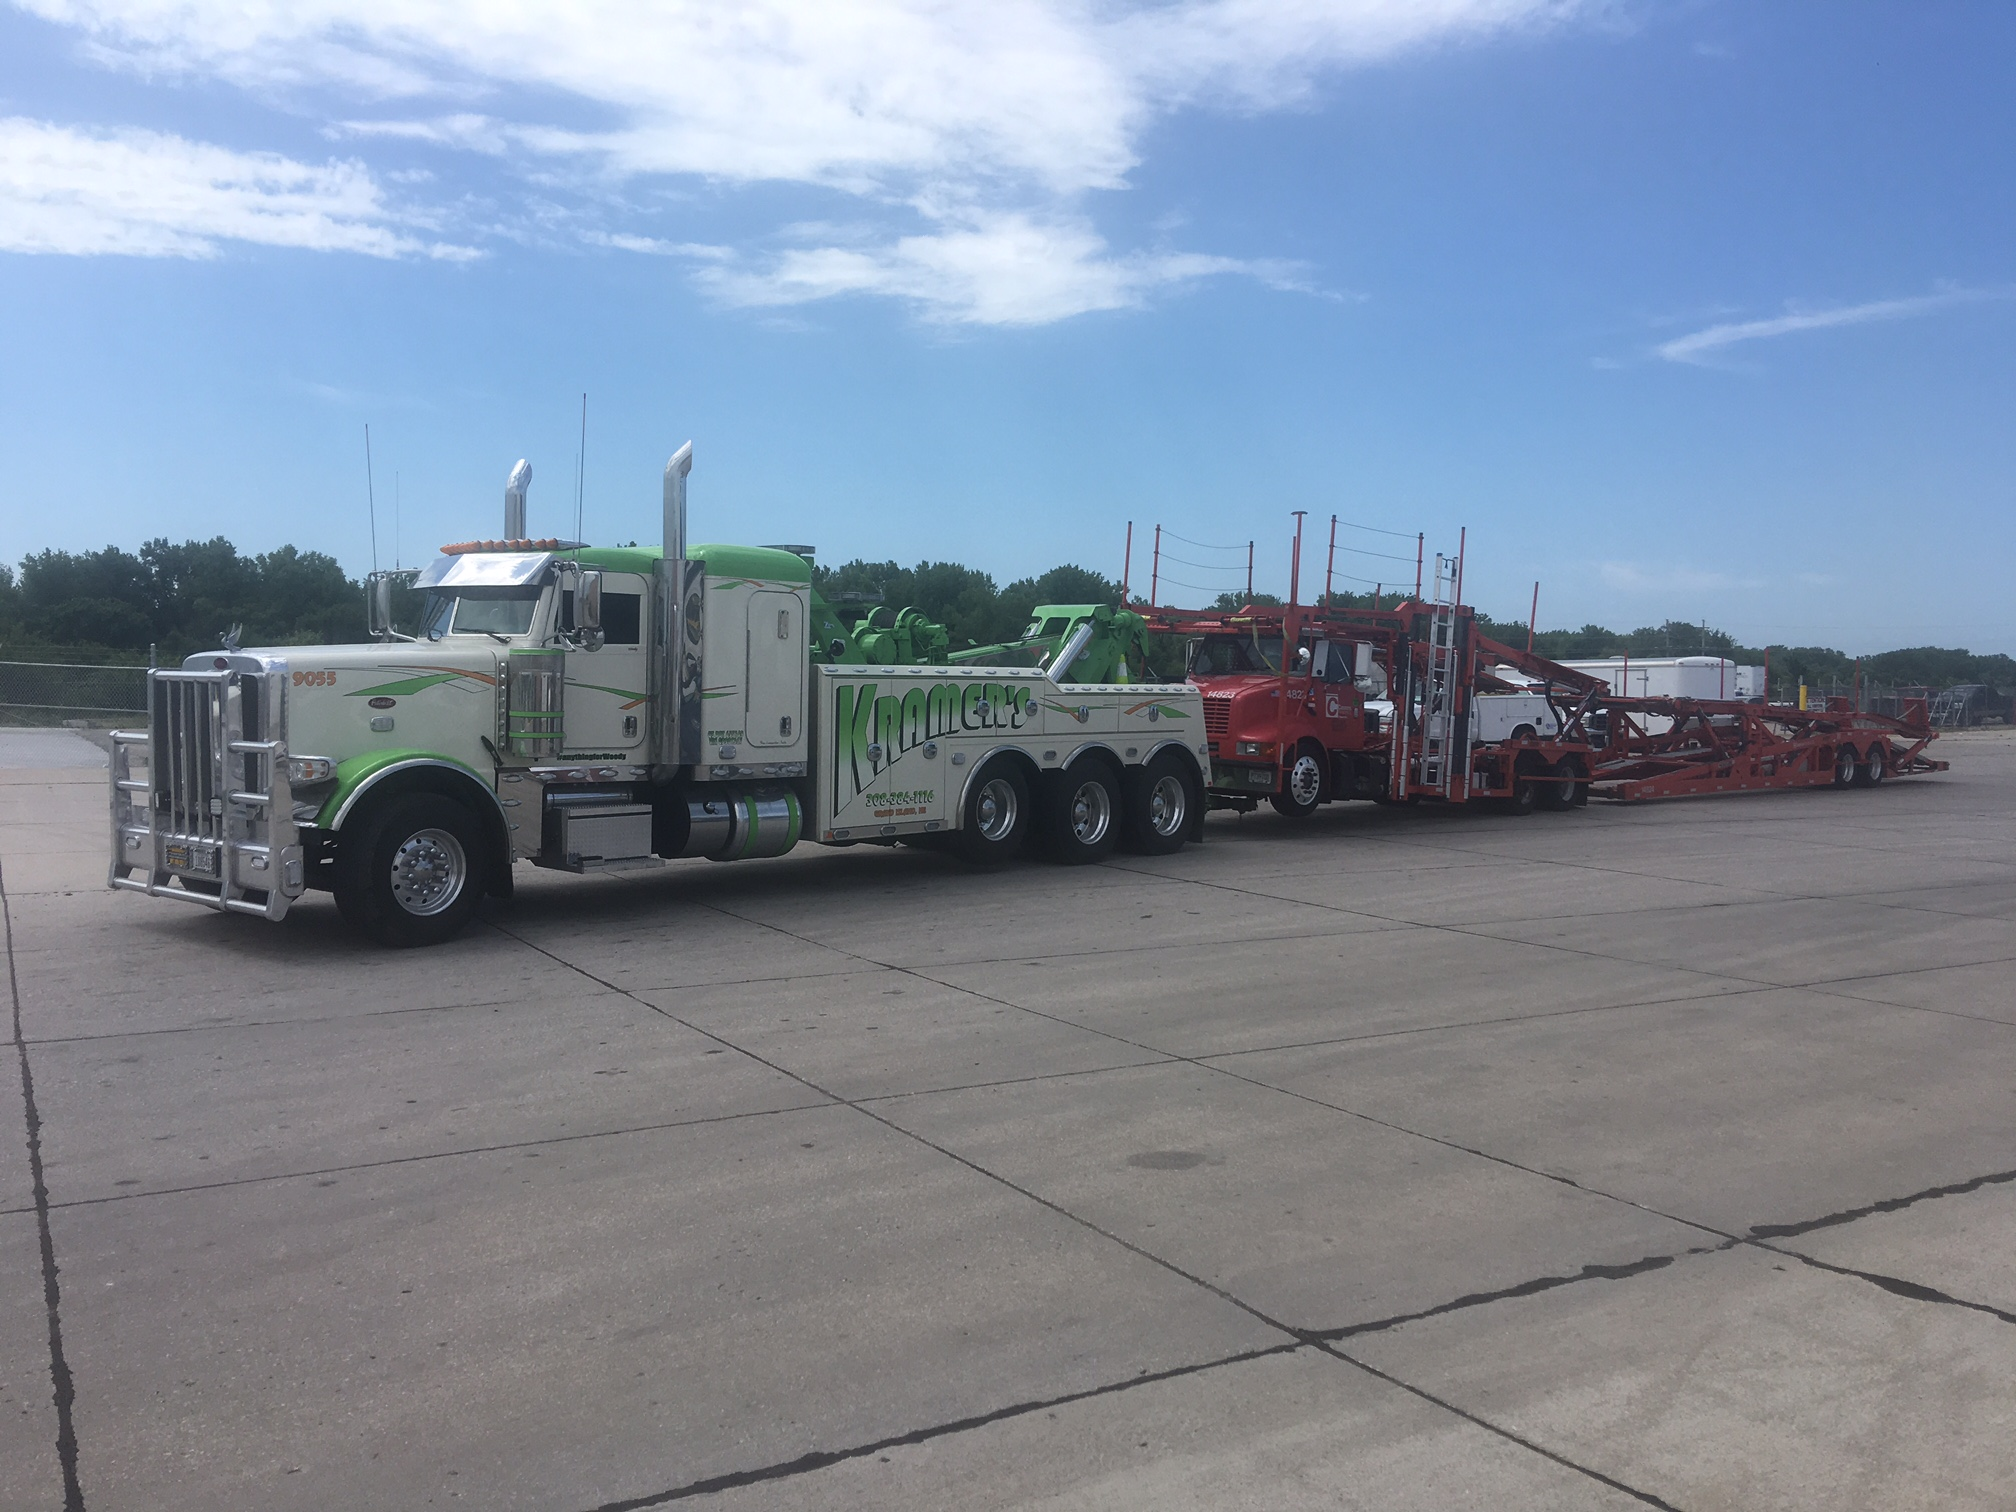 Kramer's Wrecker - Local, Family Owned Towing Service in Grand Island